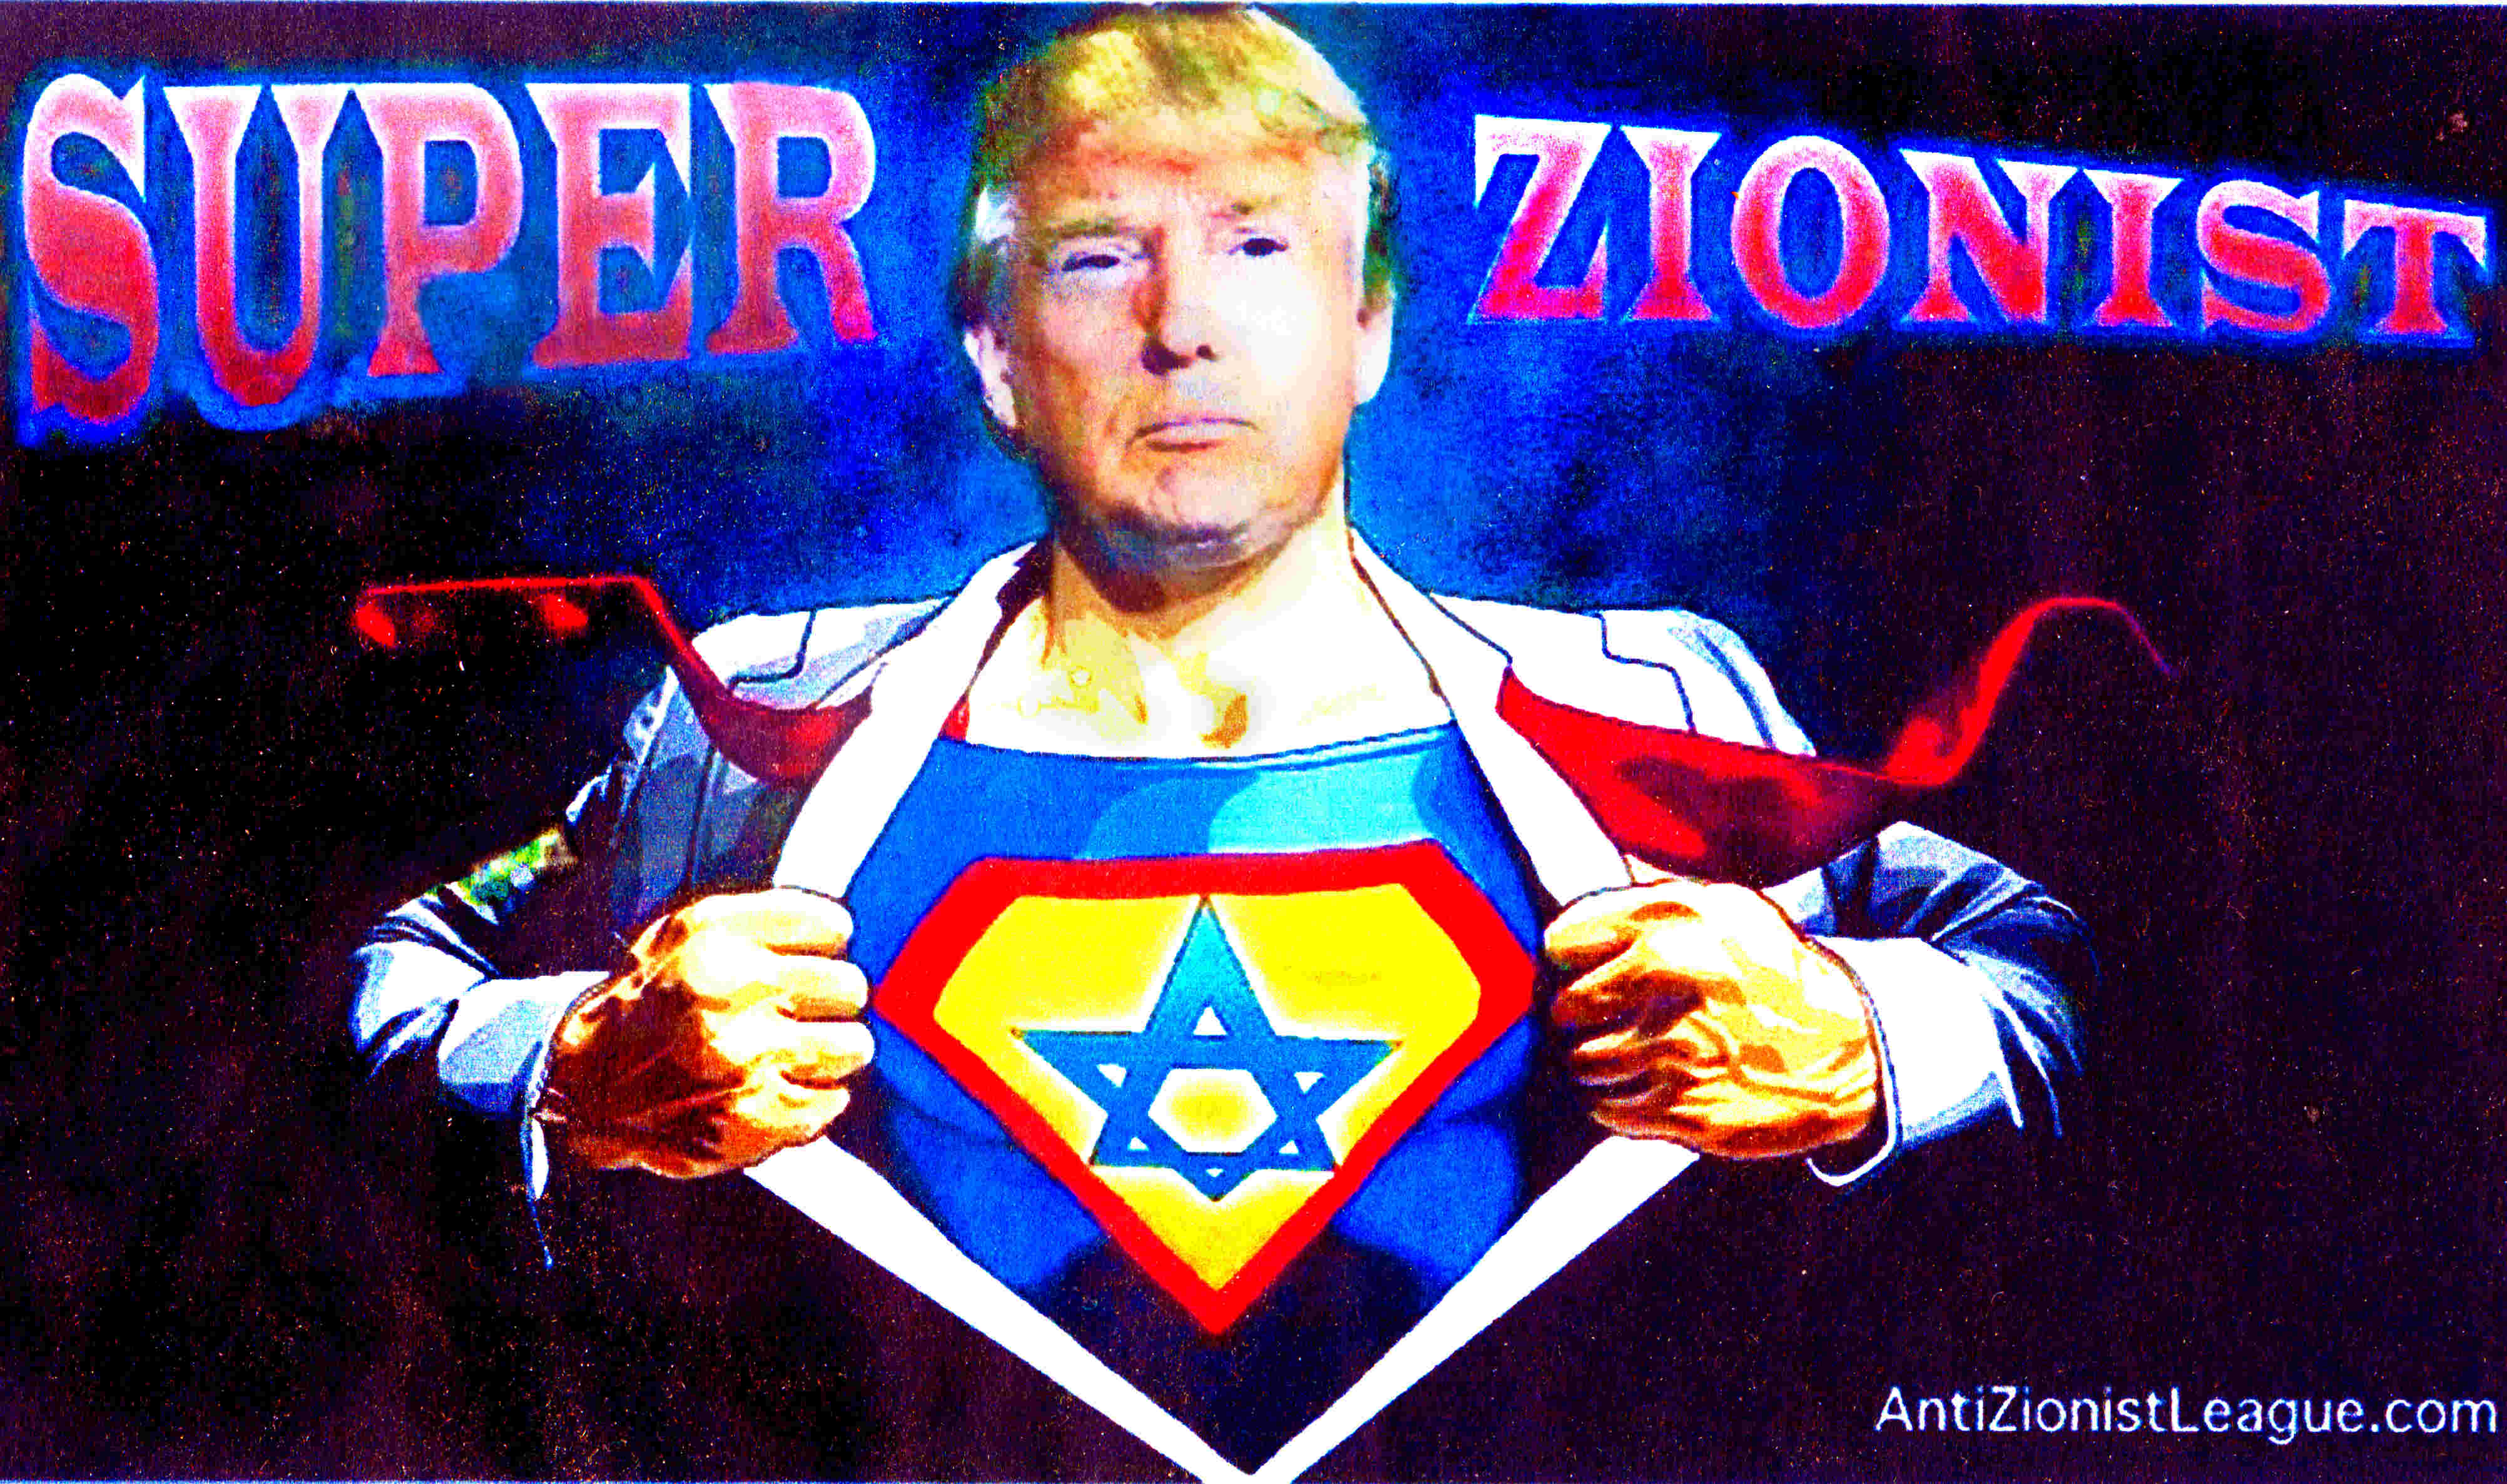 Trump - Super Zionist.jpg